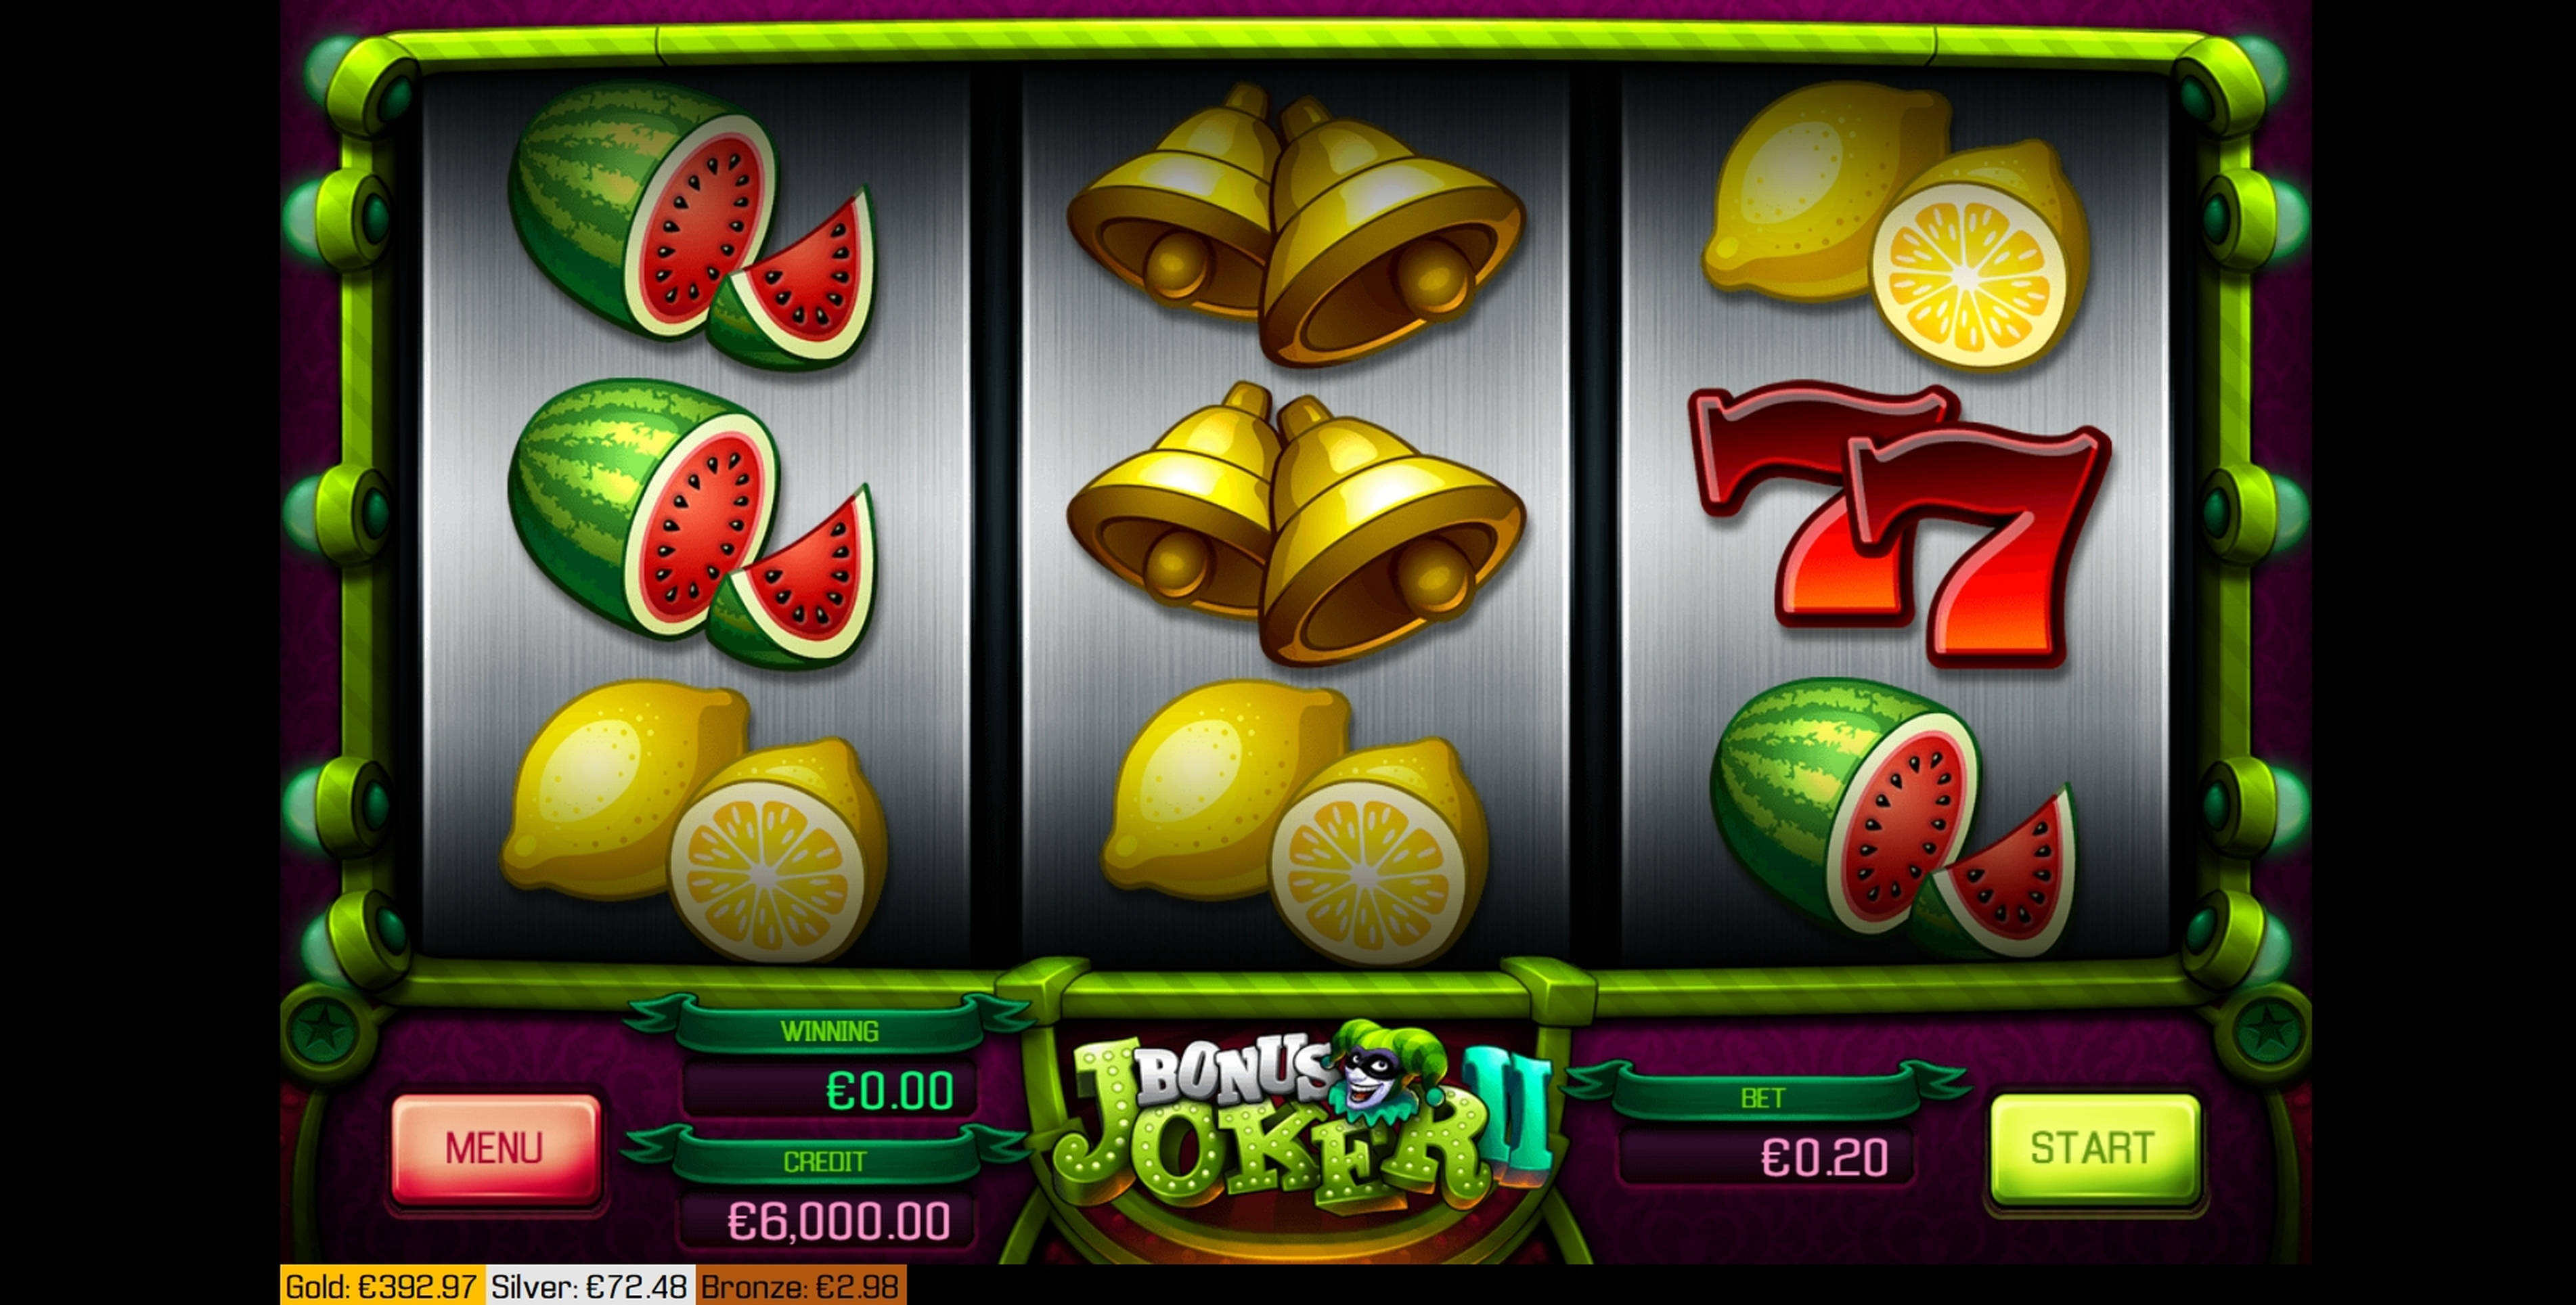 Reels in Bonus Joker 2 Slot Game by Apollo Games